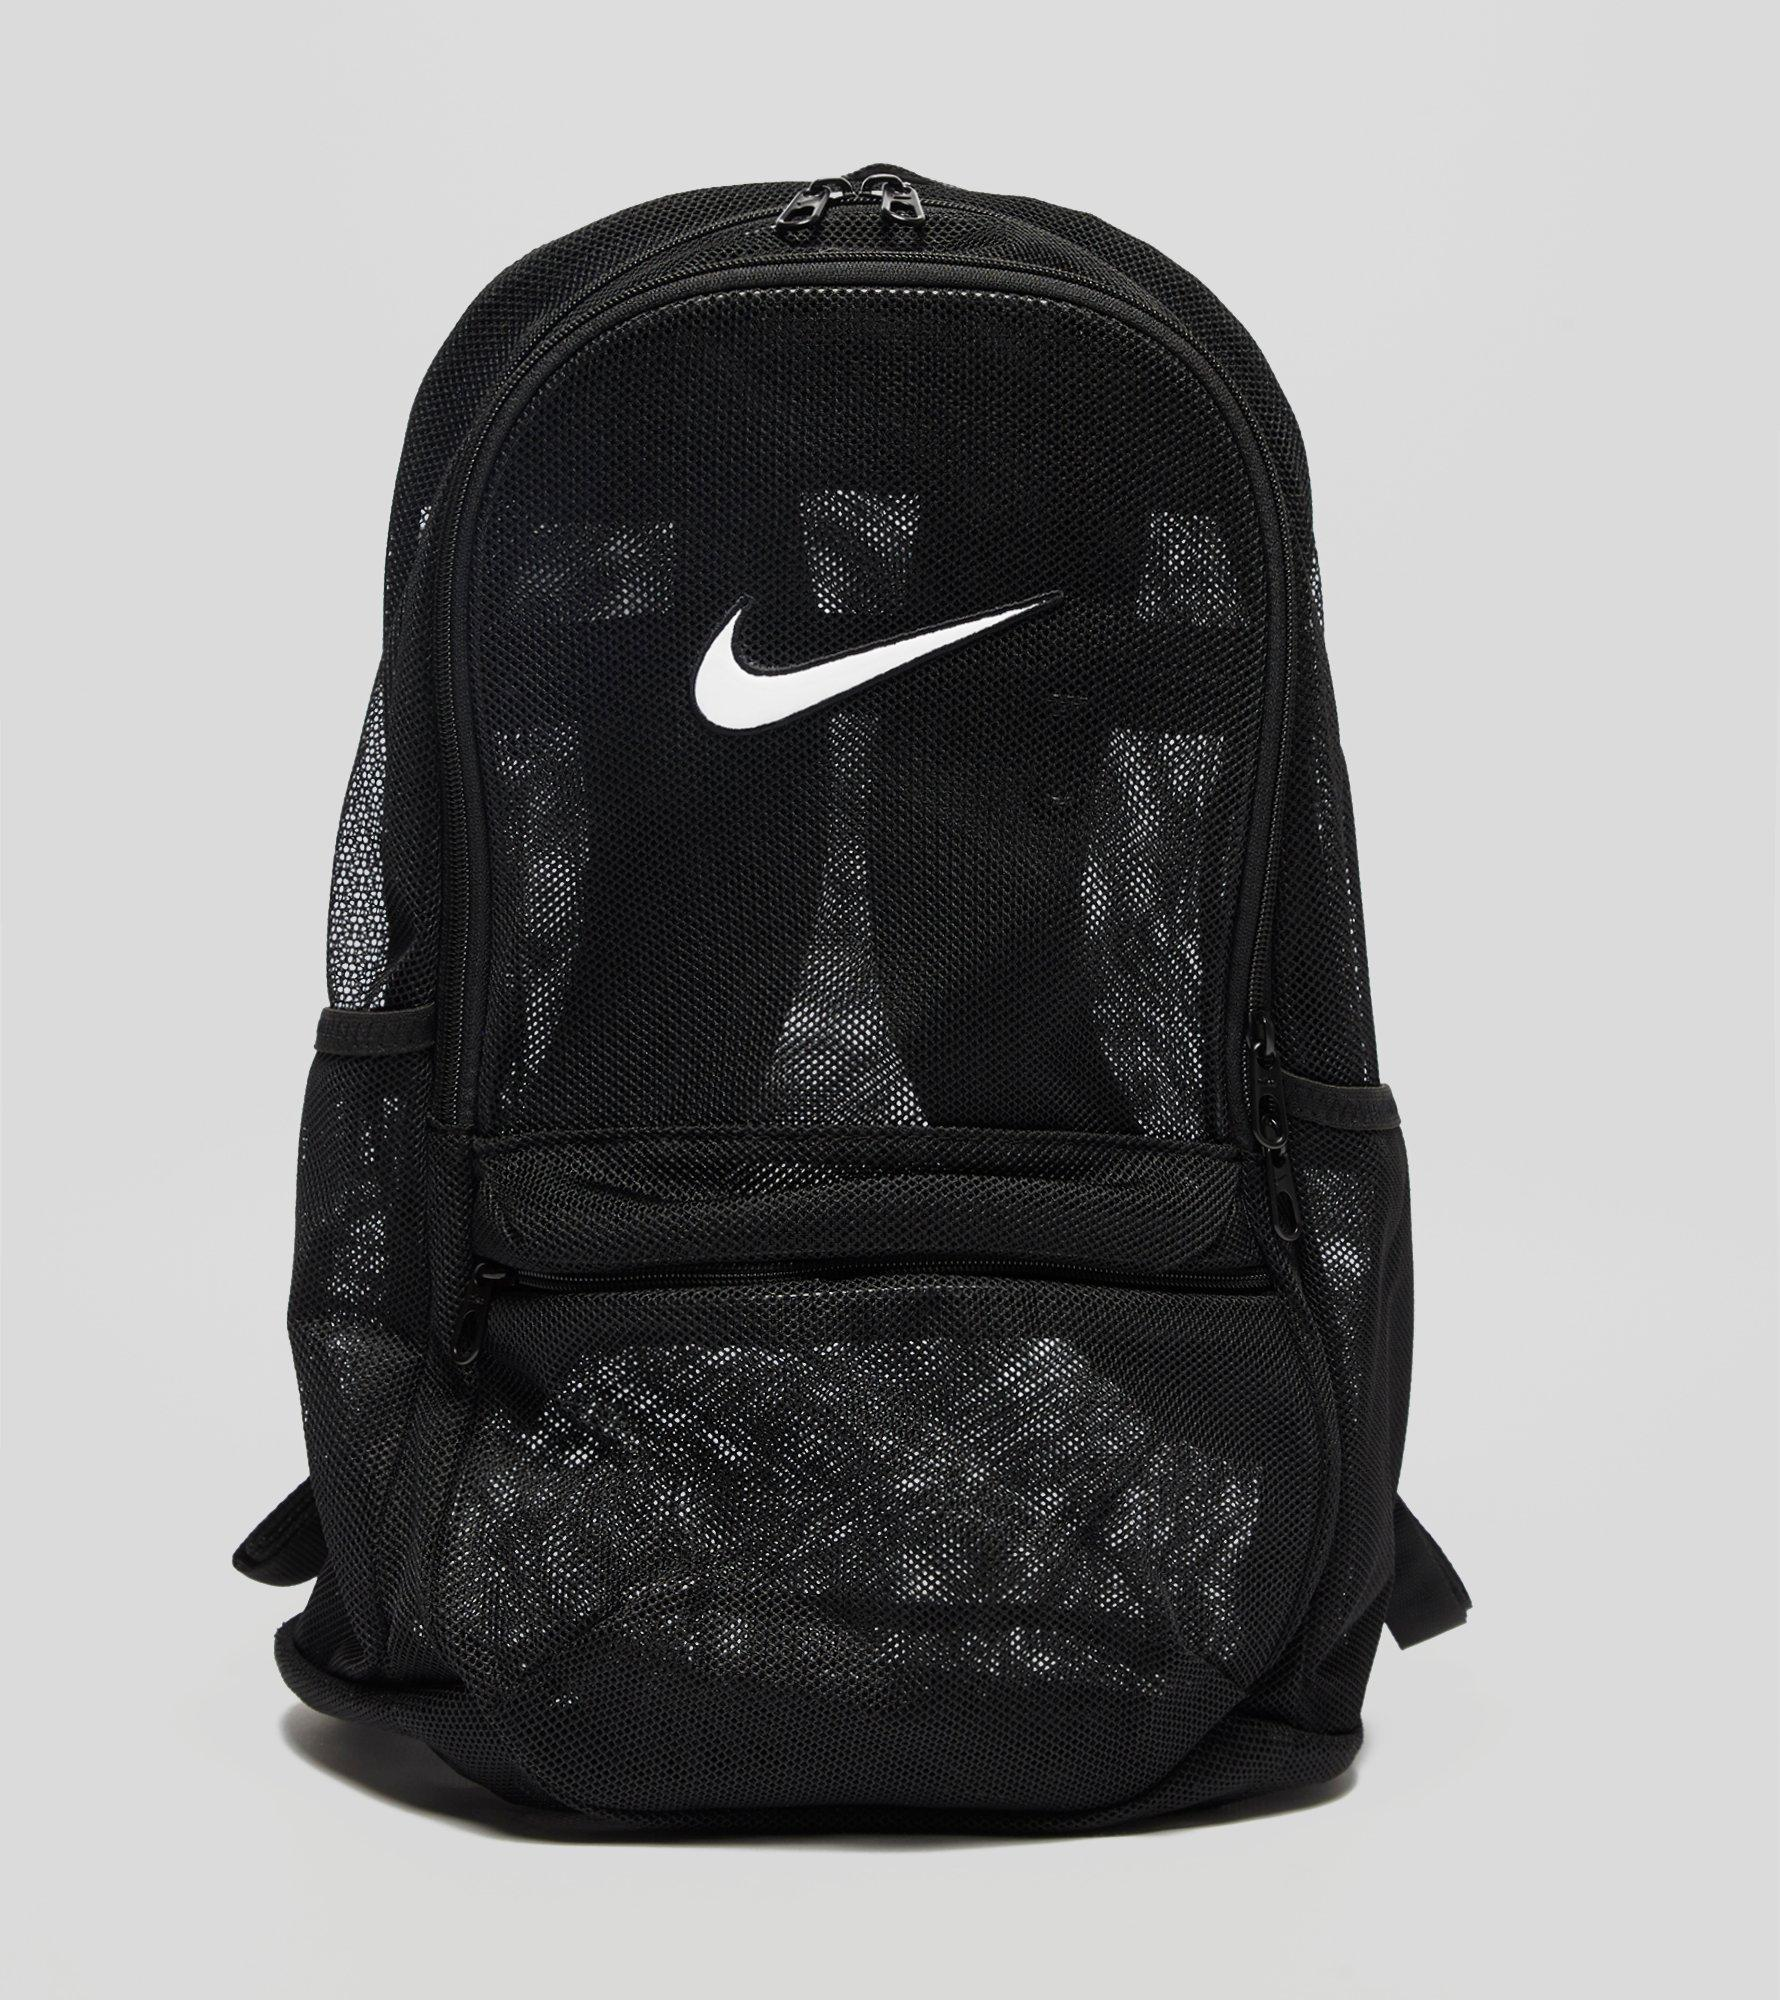 ... free shipping nike brasilia mesh backpack in black for men lyst c5389  a9666 8e40b4bc5ac7